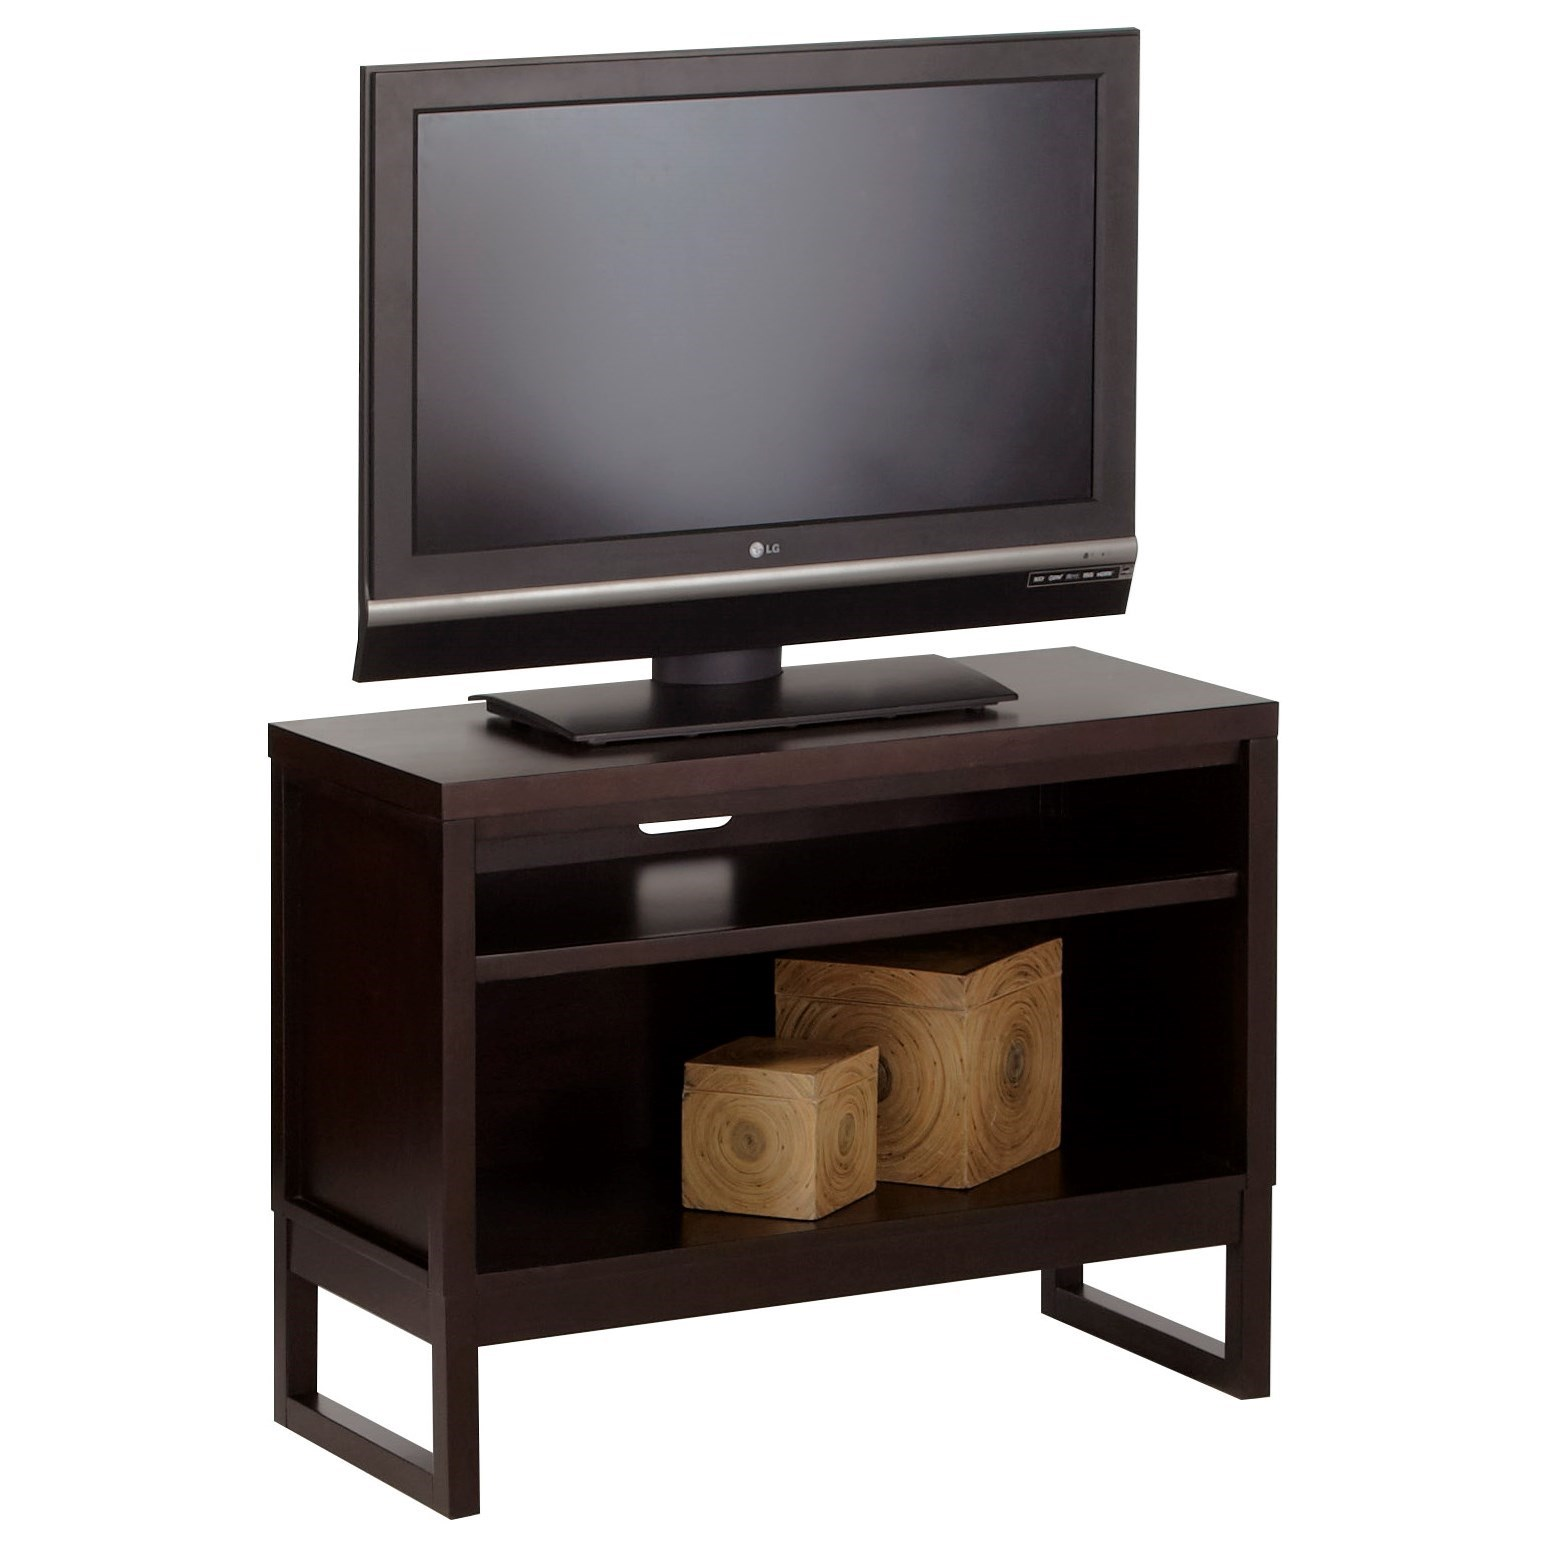 Athena TV Stand by Progressive Furniture at Value City Furniture